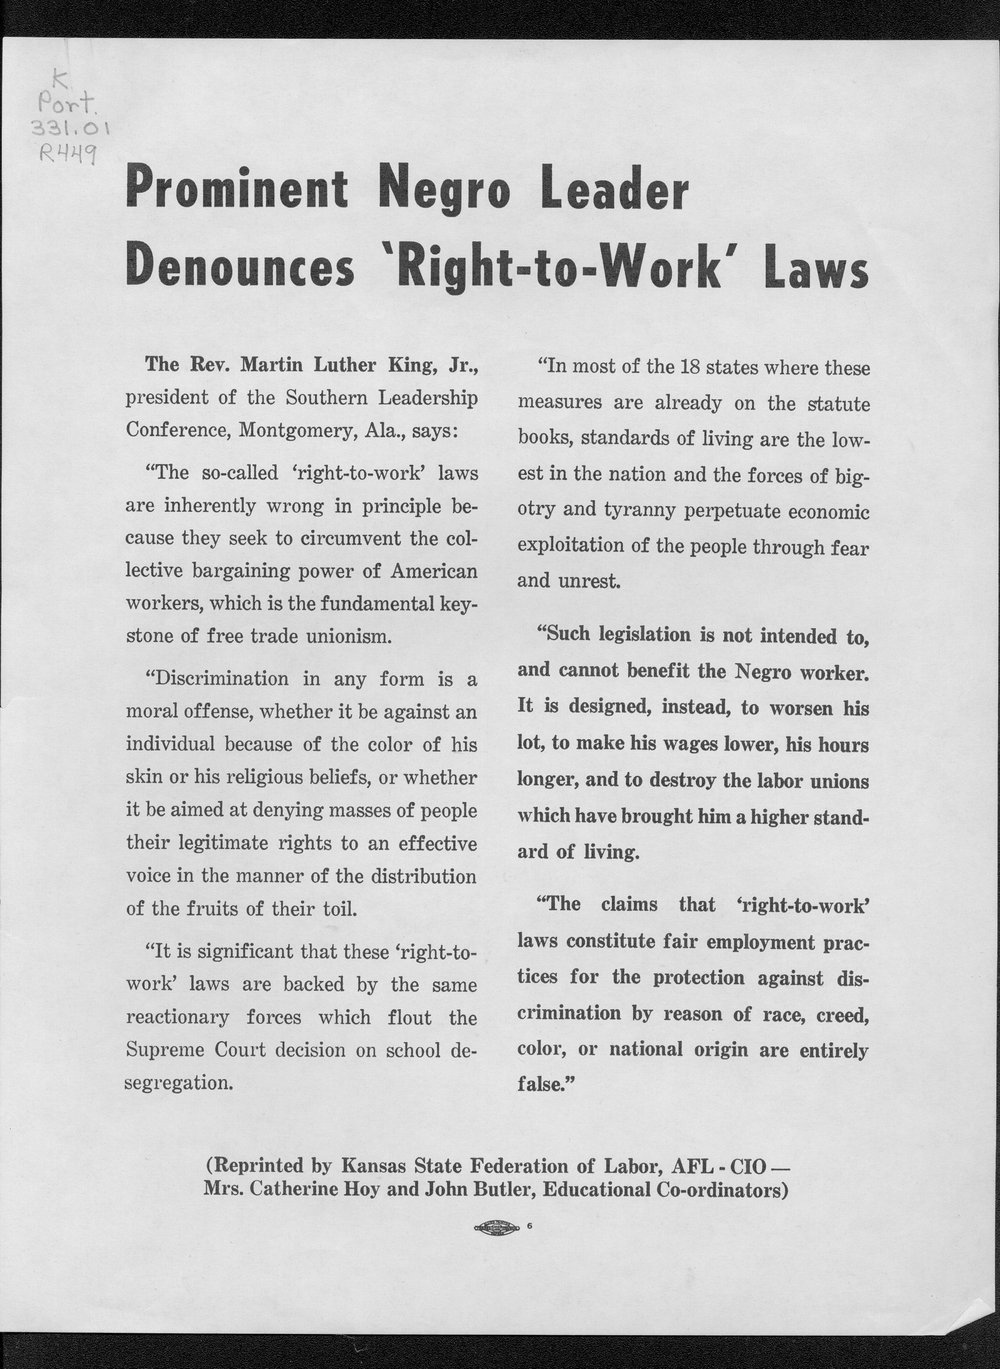 Prominent Negro leader denounces right-to-work laws